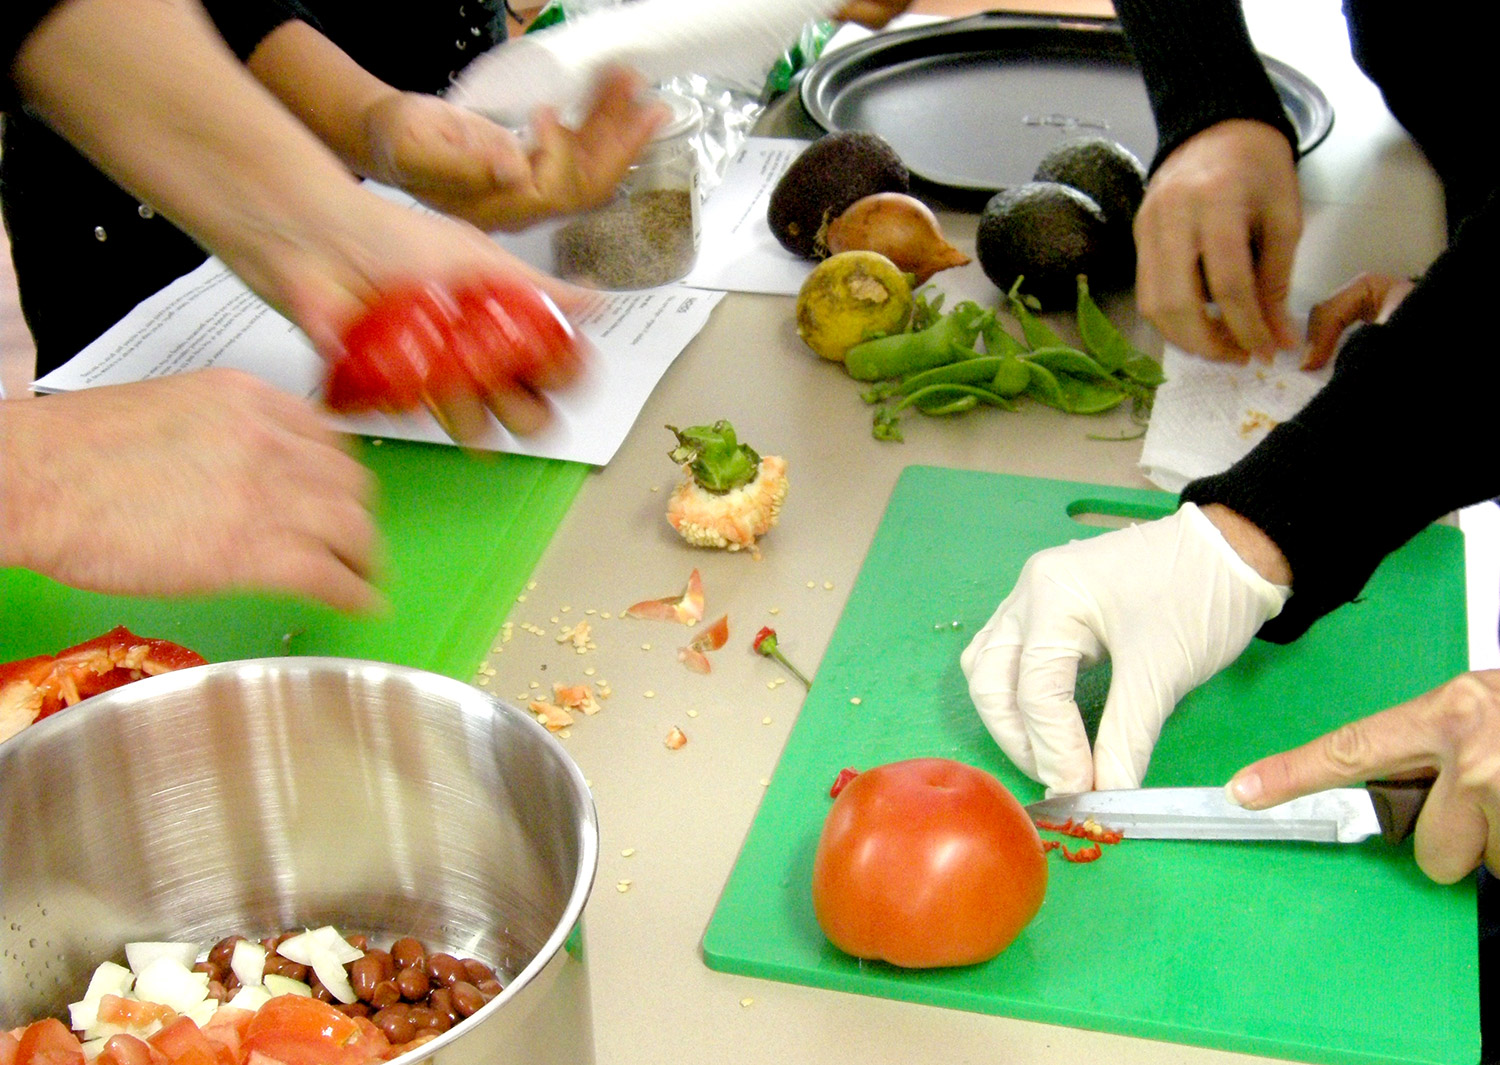 Staff training session. Hands-on work in the kitchen preparing a Mexican kidney bean dish from scratch.